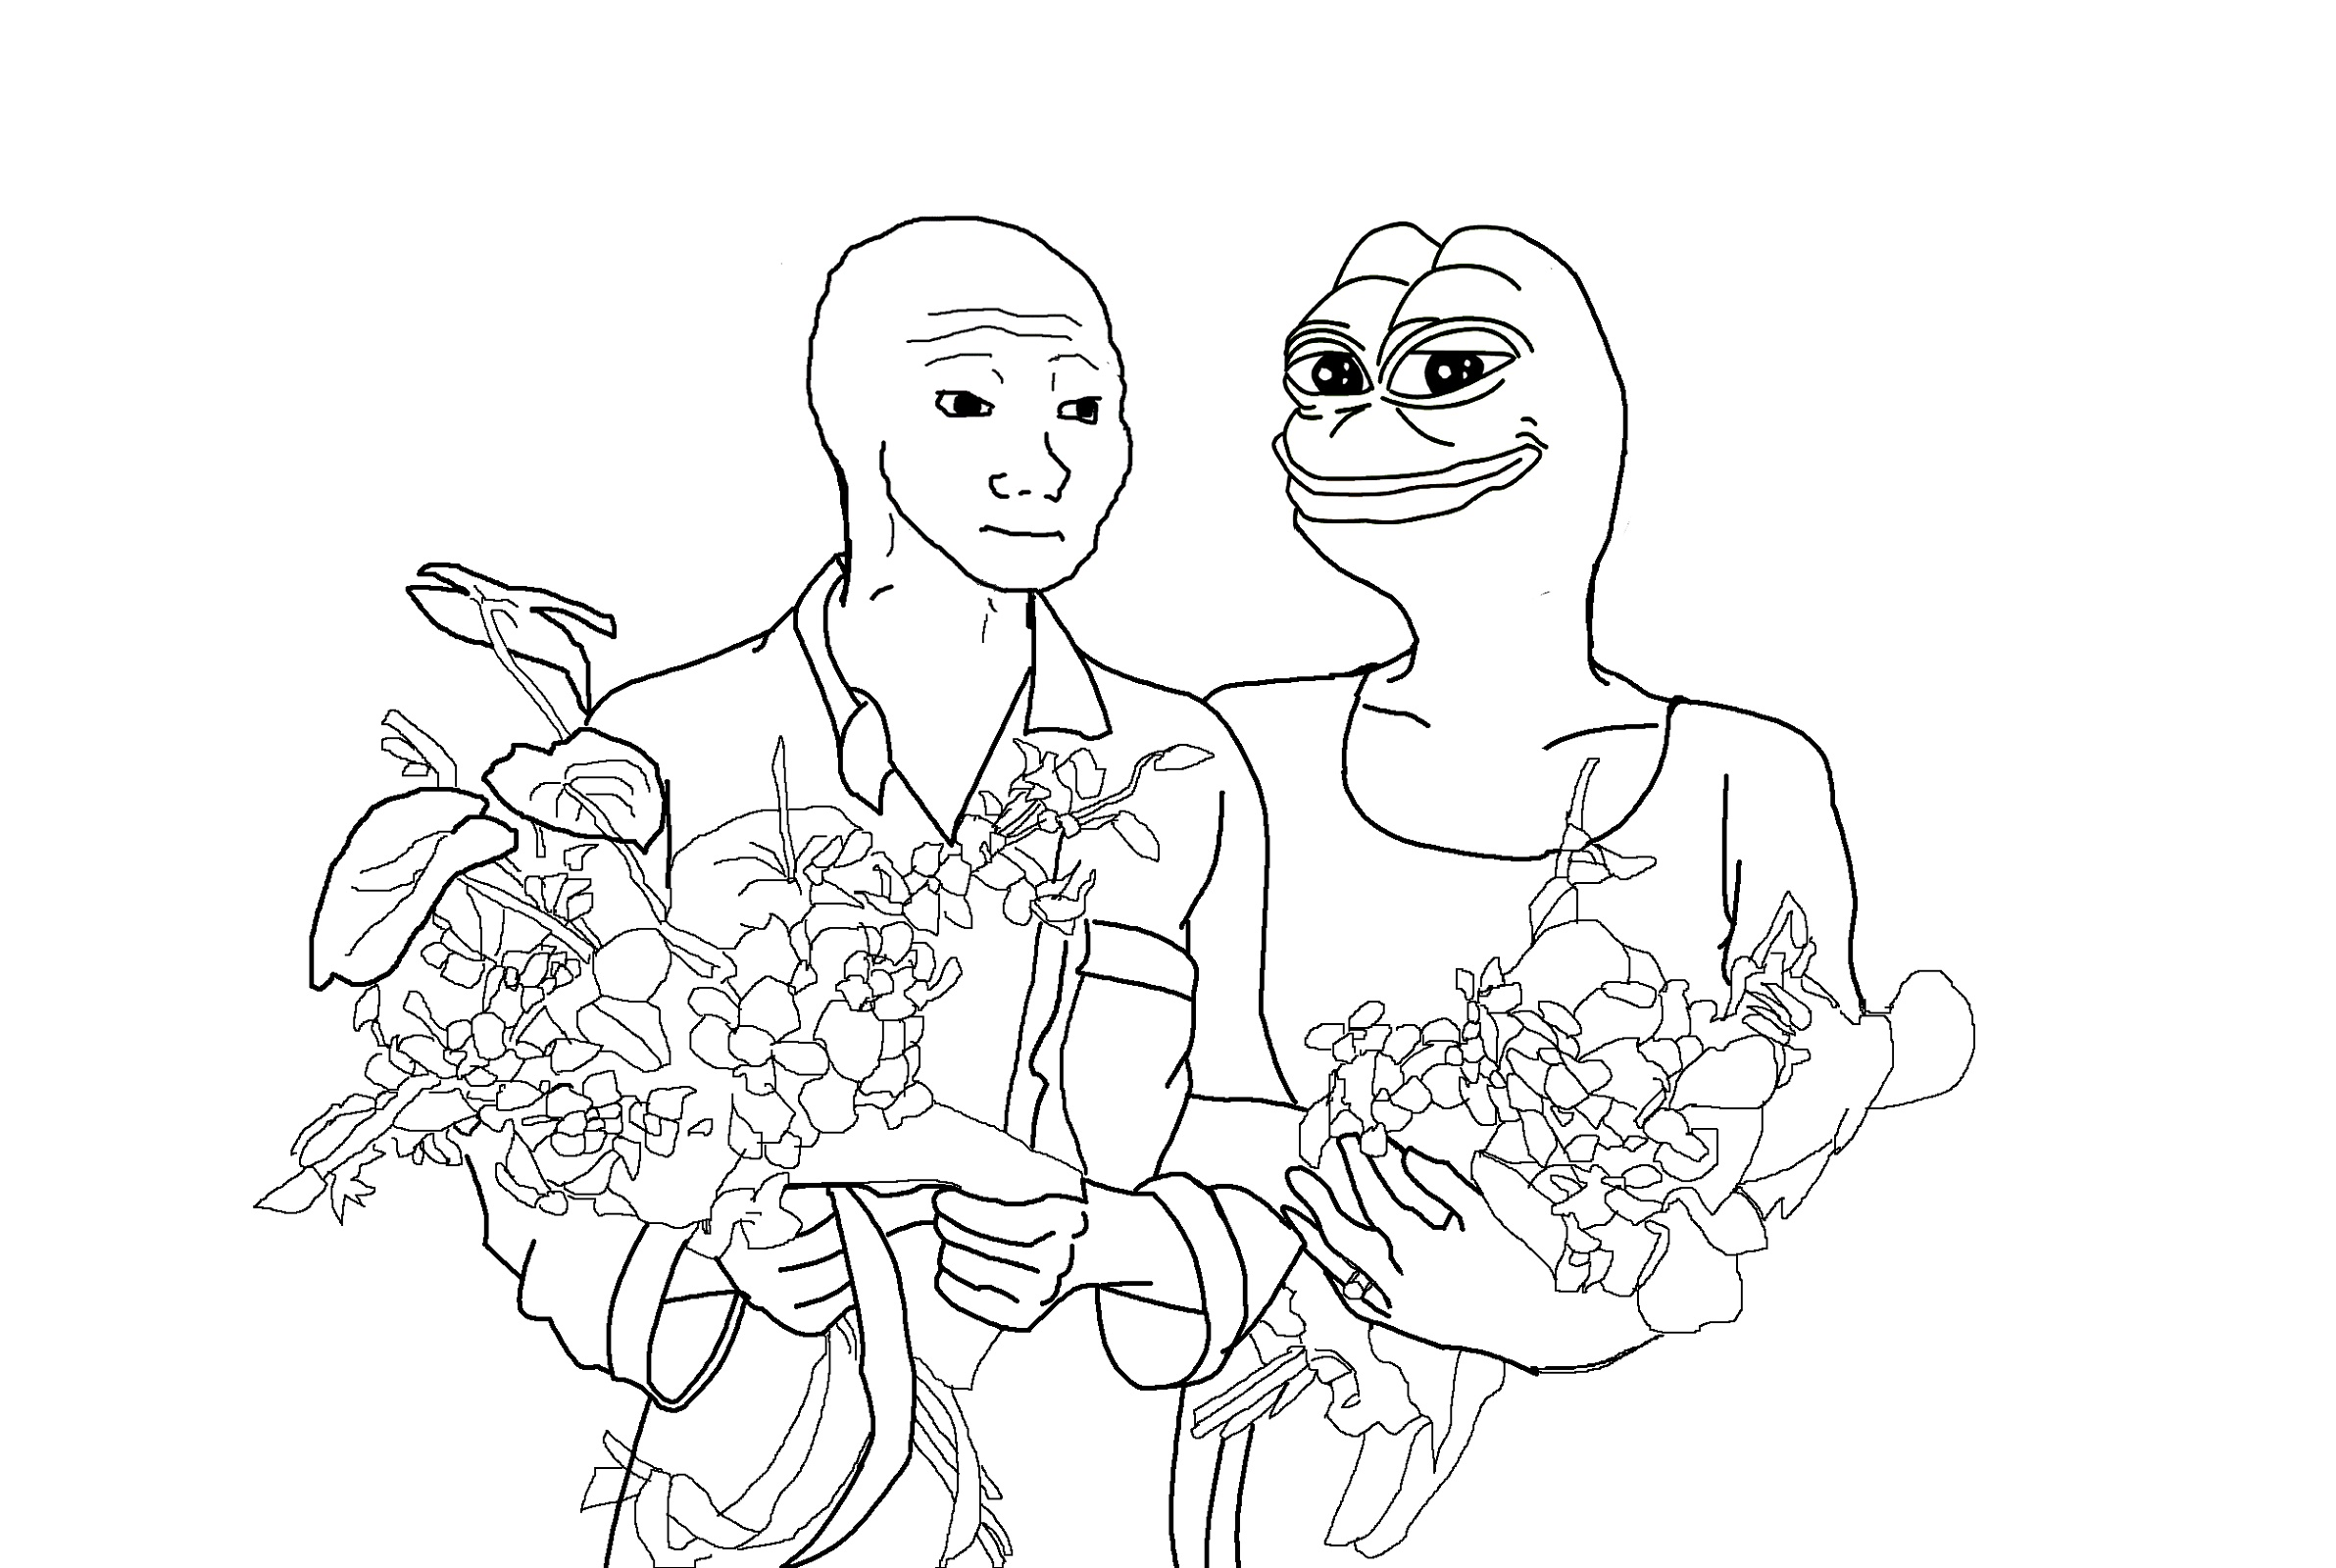 Meme Coloring Book Pepe